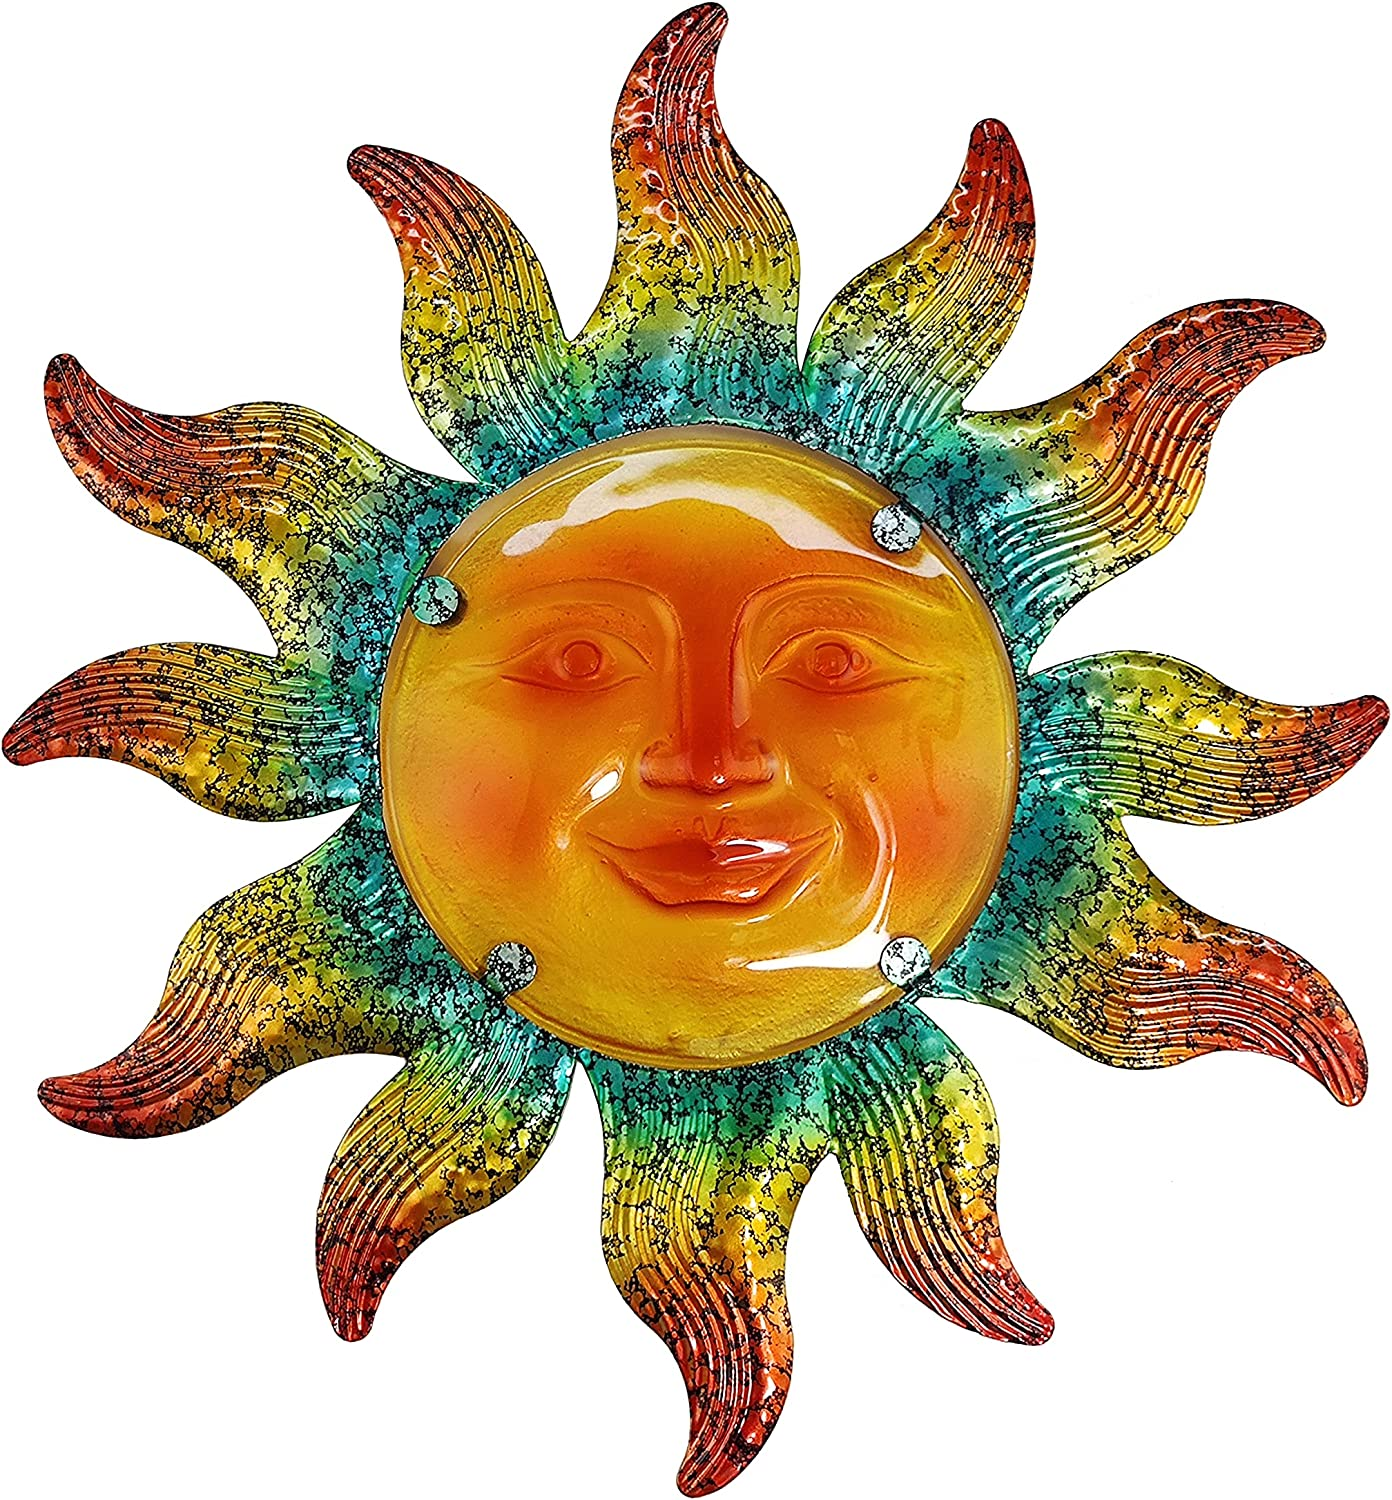 JOYBee Metal Sun Face Wall Art Decor-Sunface all Decor-Home Decor Artistic Sun Face Metal Wall Sculpture for Indoors or Outdoors Kitchen Farmhouse patio porch (13.25*12.5inch)